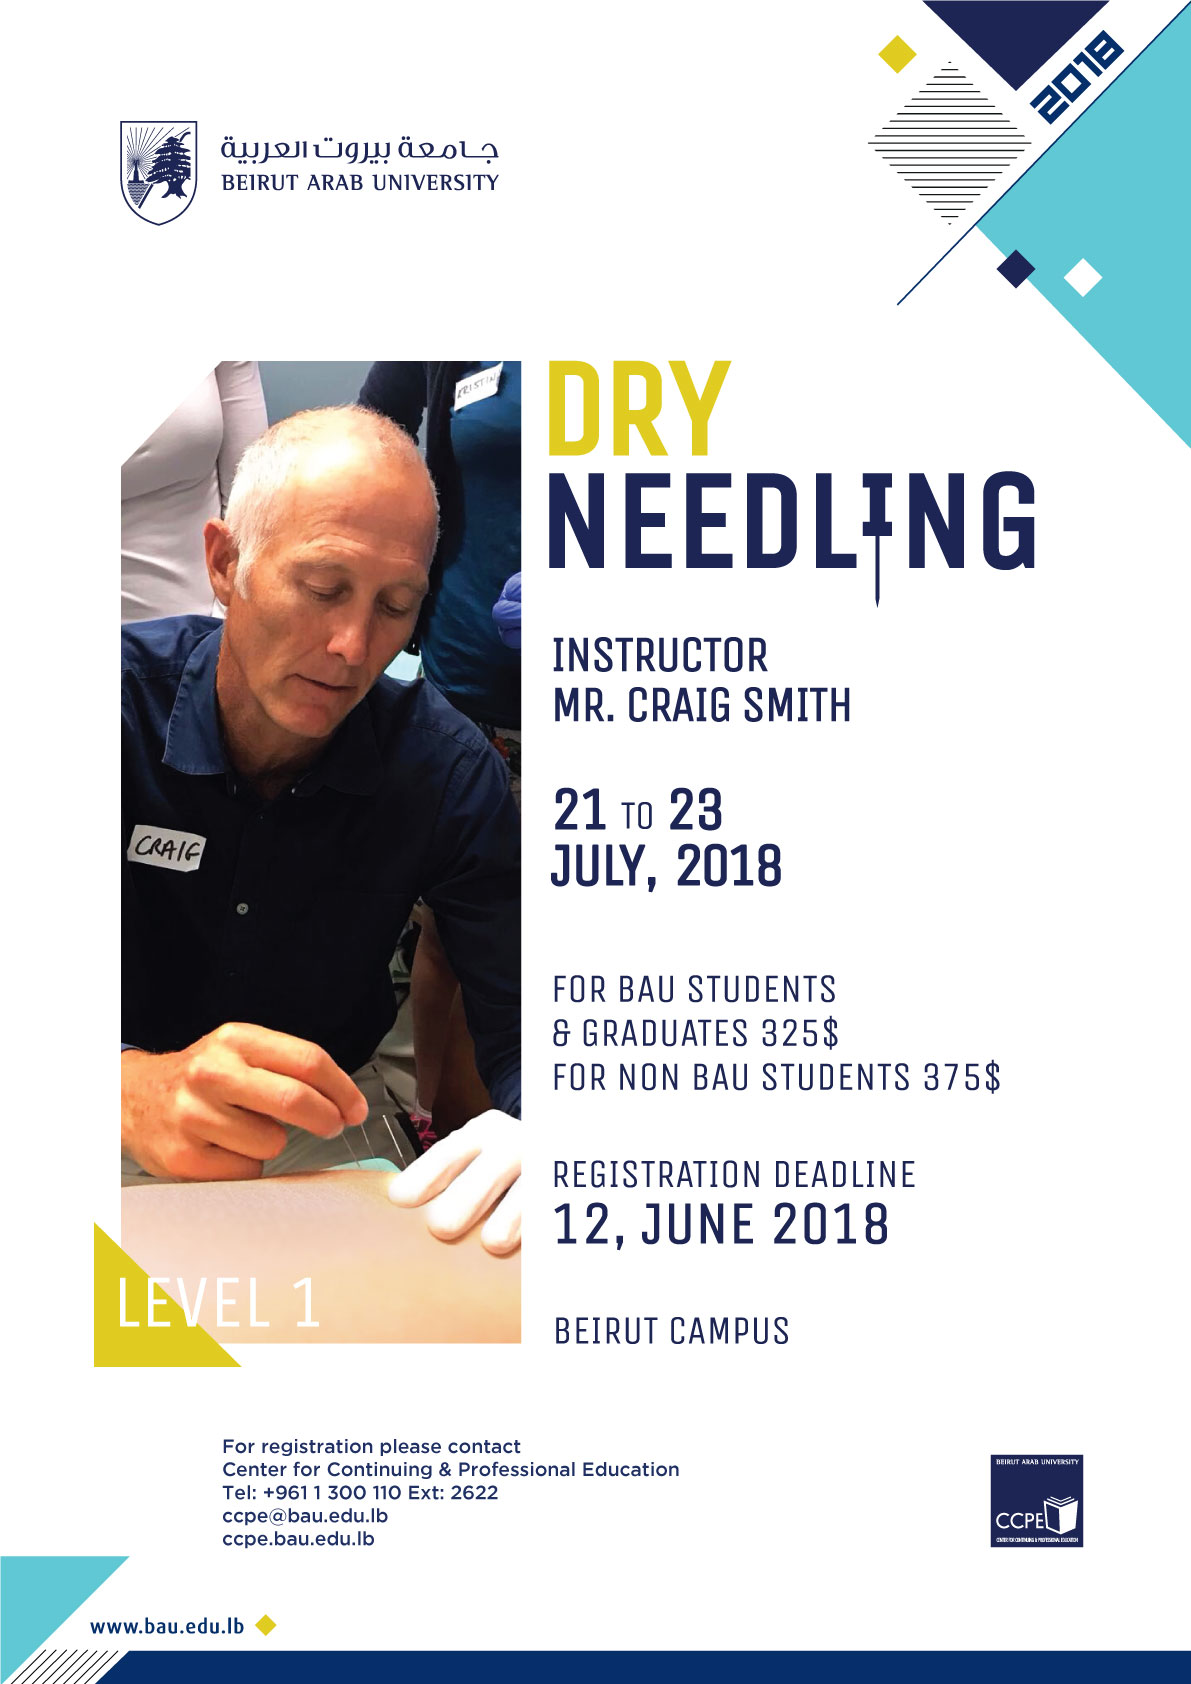 Dry Needling: Level 1